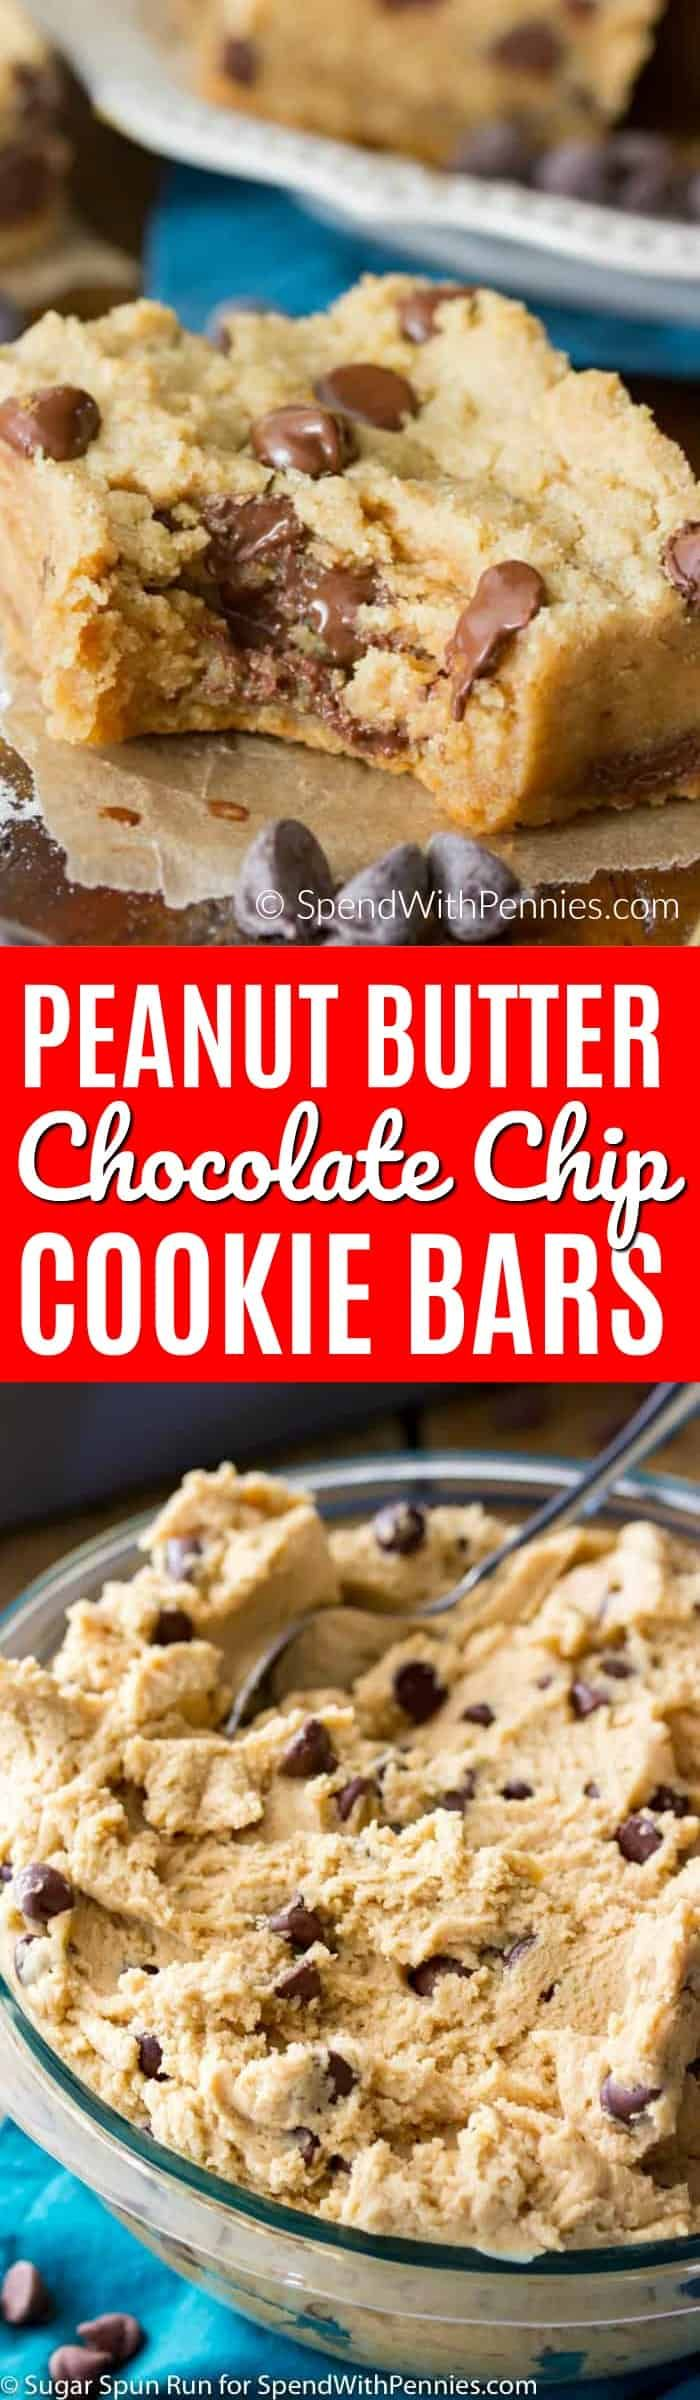 Soft and chewy peanut butter chocolate chip cookie bars! These cookie bars are made extra thick in a 9x9 pan and are loaded with creamy peanut butter and packed full of chocolate chips! | Posted By: DebbieNet.com